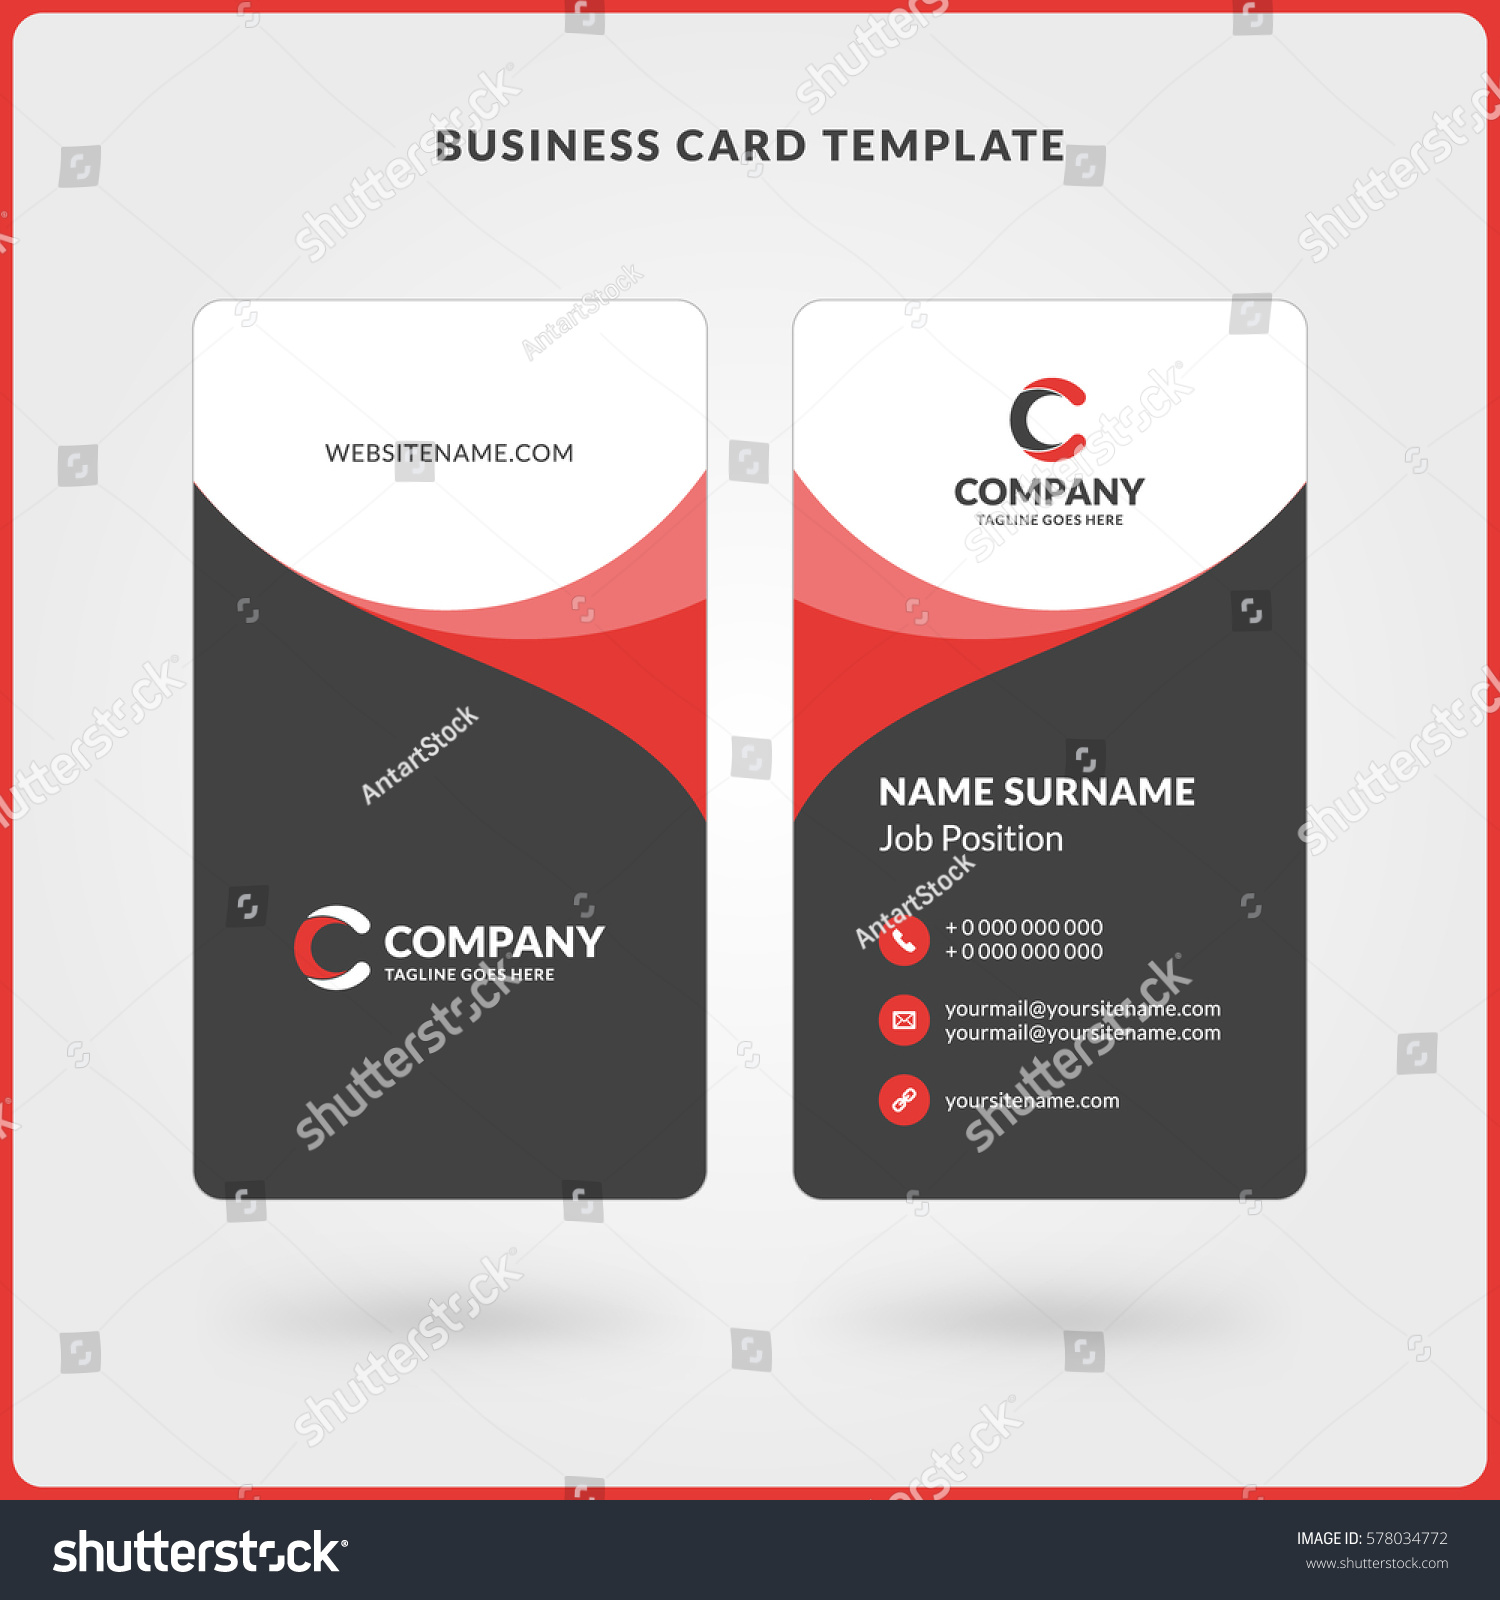 Vertical Doublesided Business Card Template Red Stock Vector ...